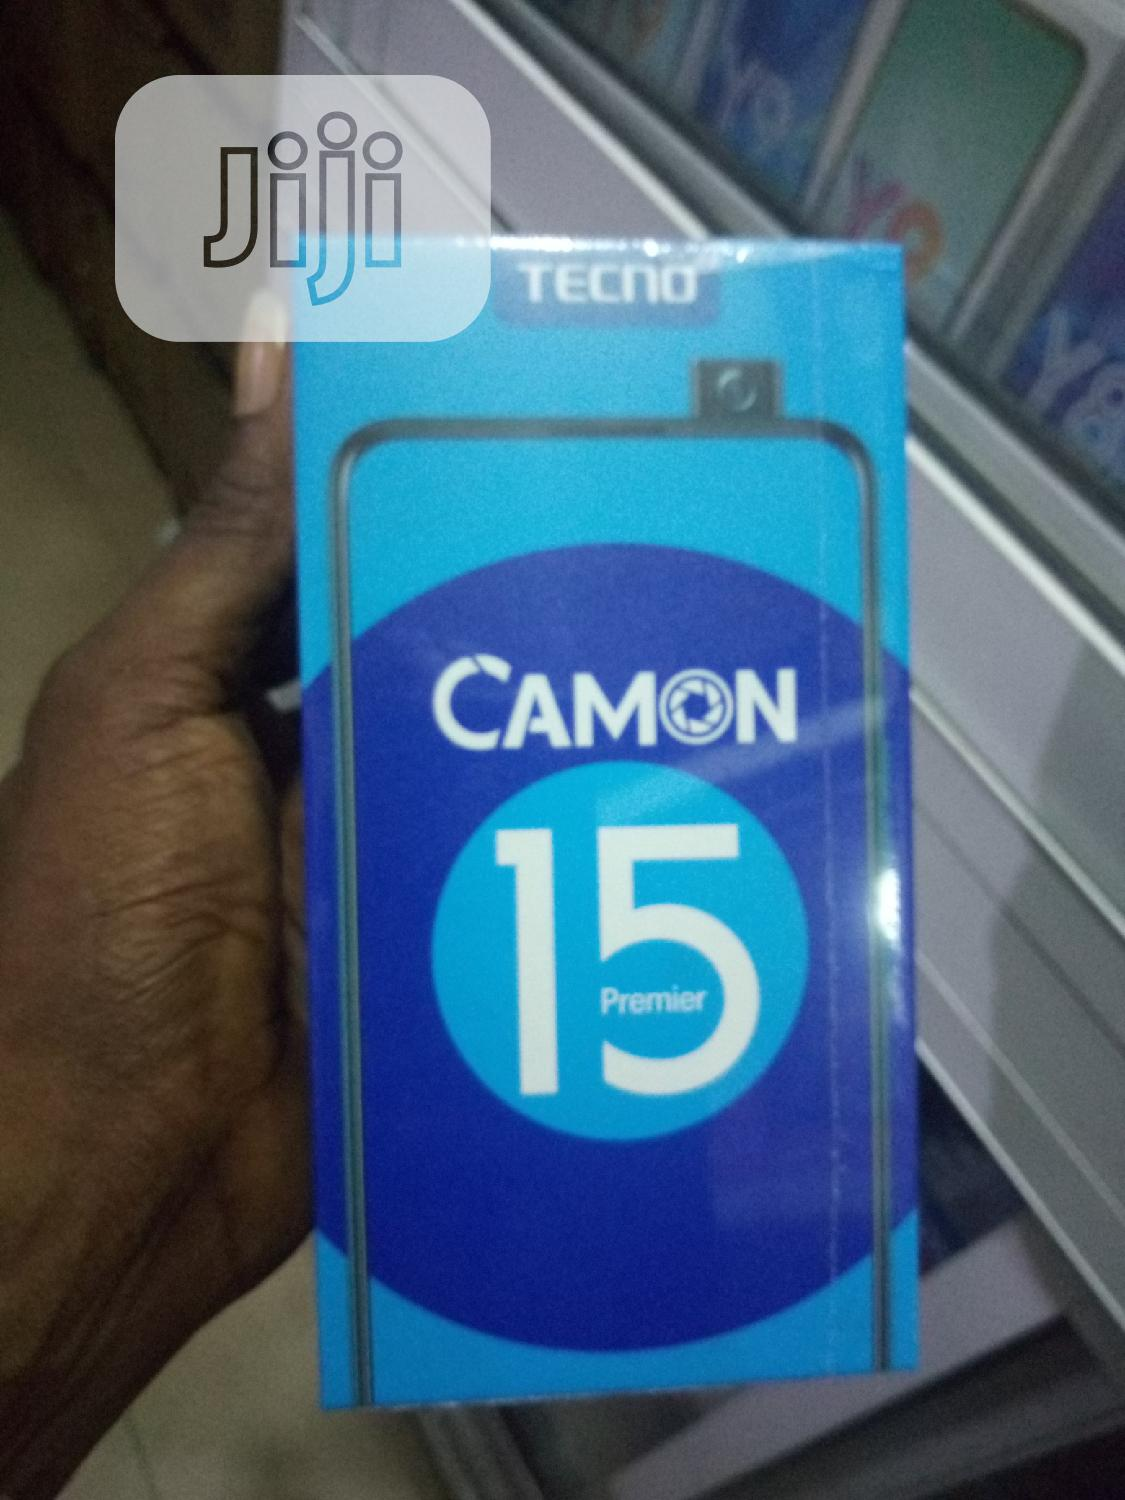 New Tecno Camon 15 Premier 128 GB | Mobile Phones for sale in Ikeja, Lagos State, Nigeria